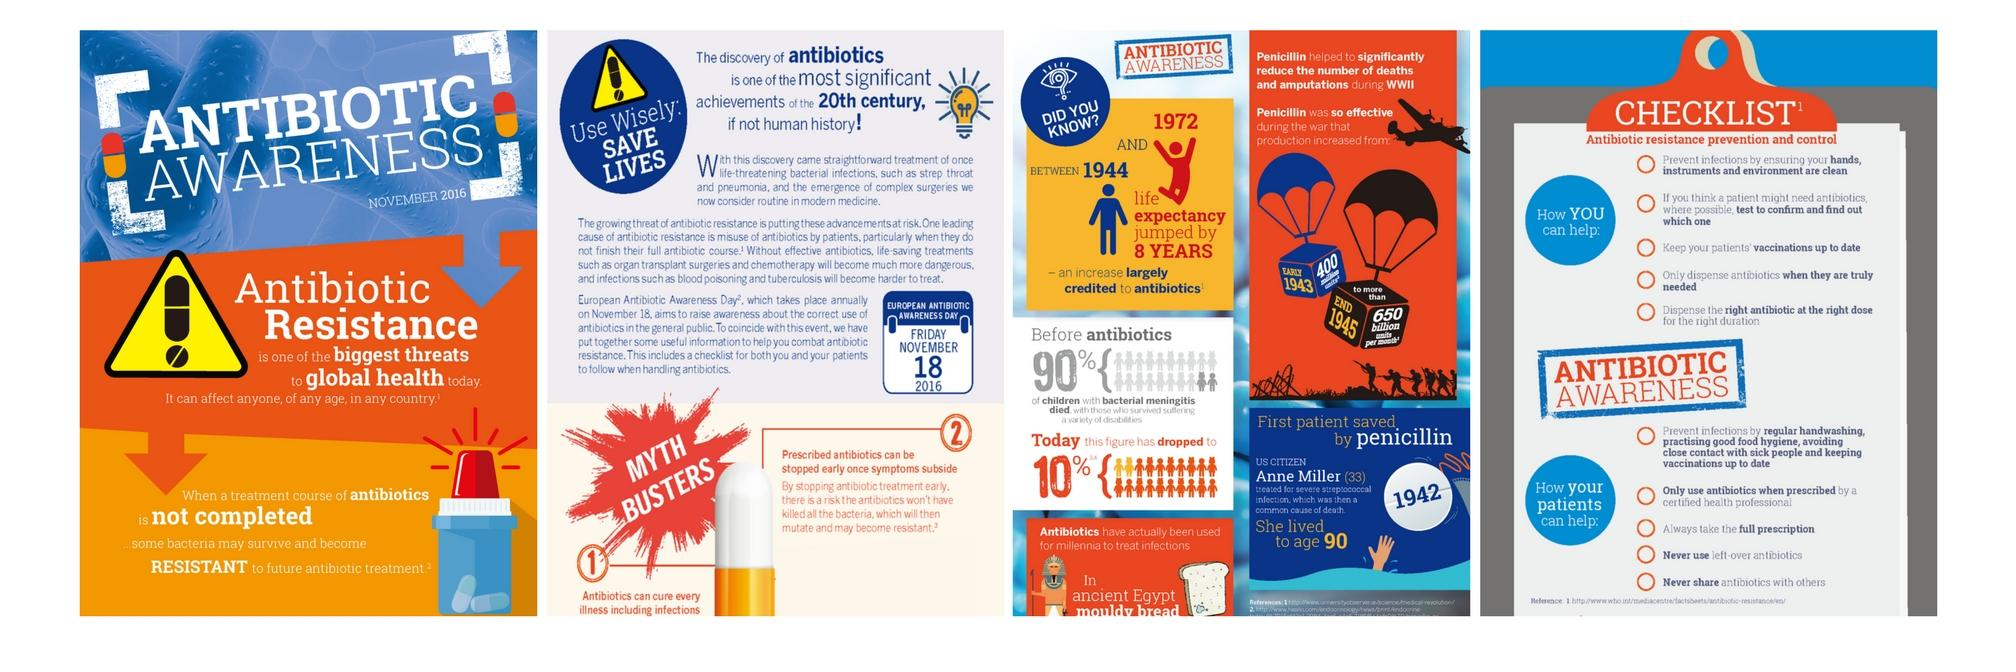 Antibiotic Awareness Digital Download